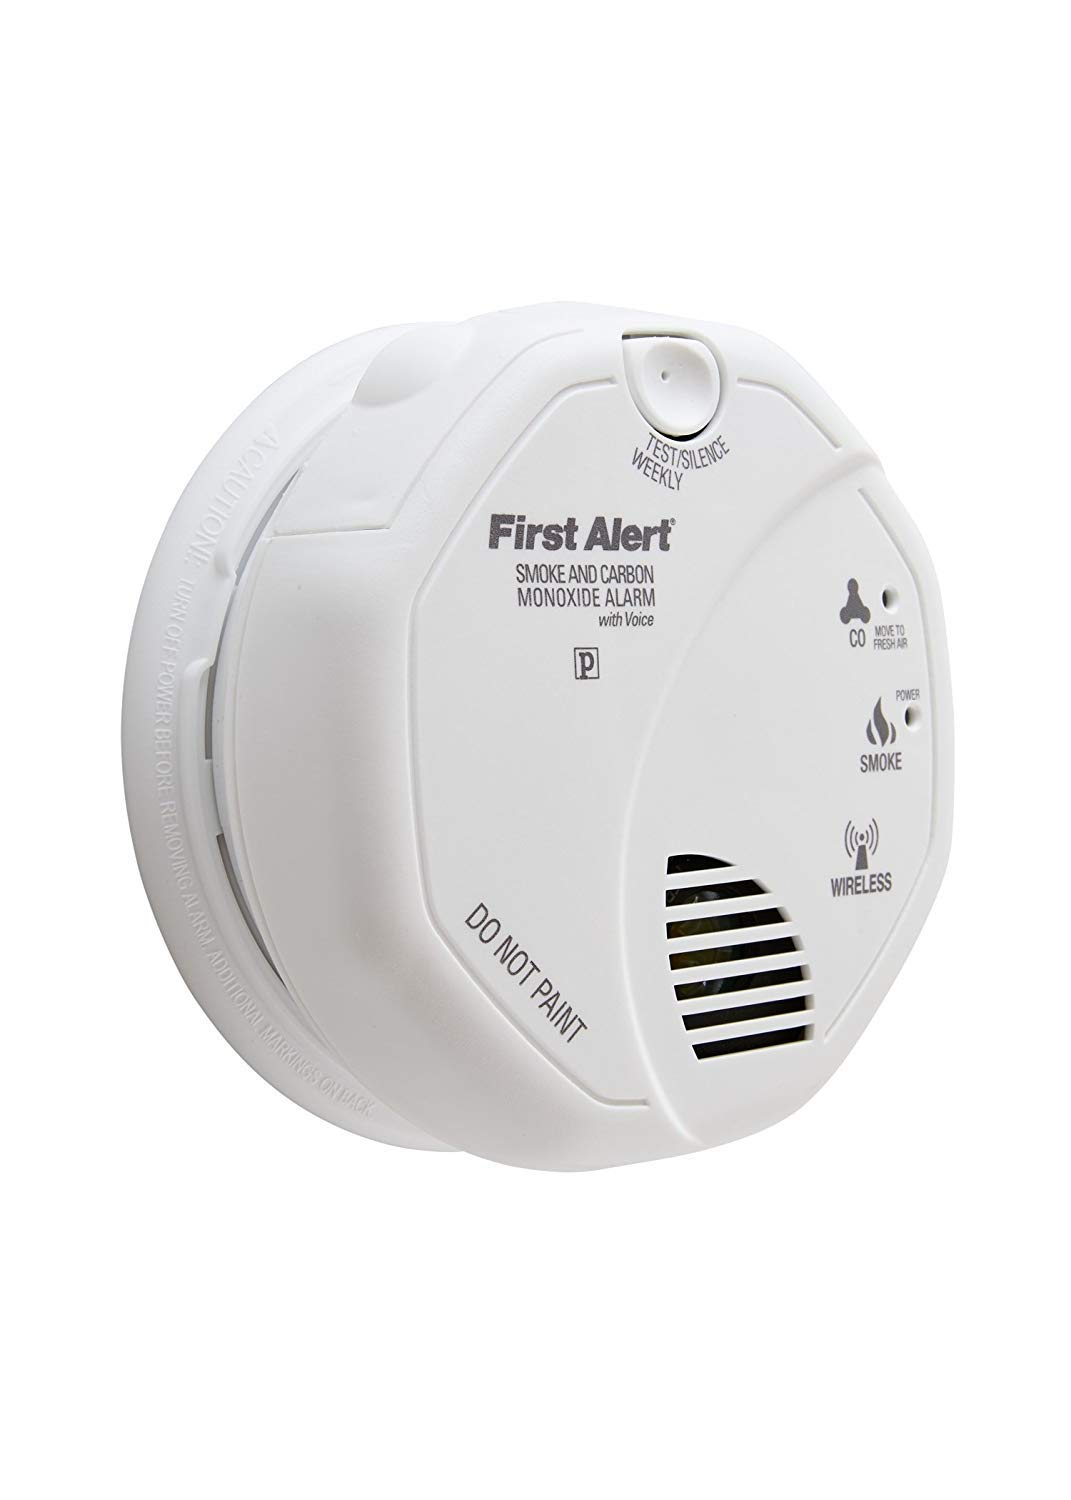 Amazon.com: First Alert SCO500B - Detector de humo ...